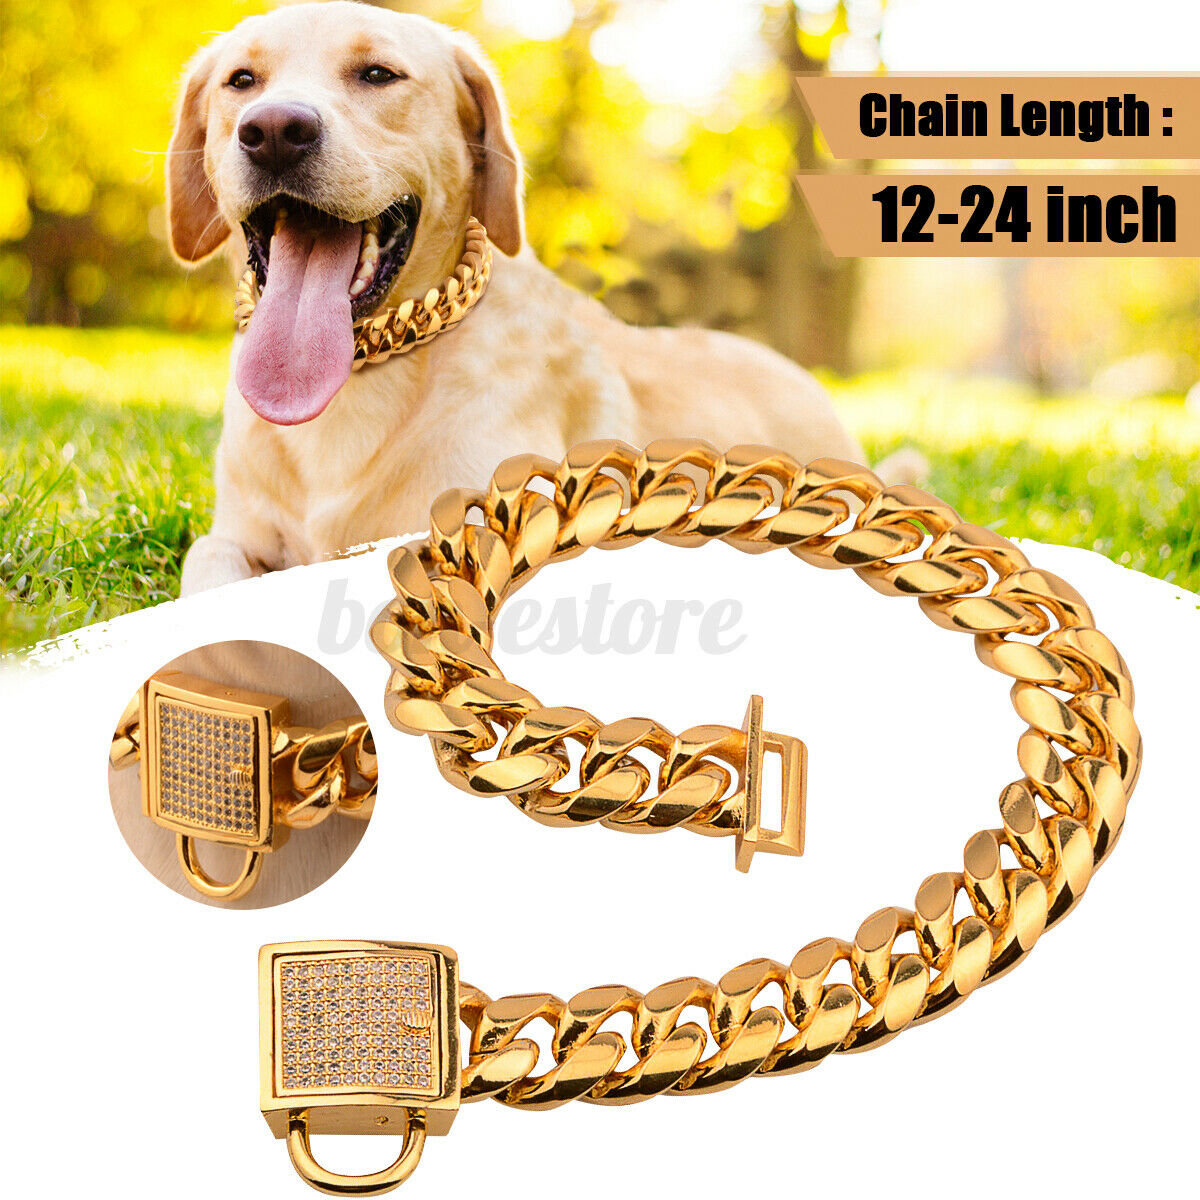 18/24 Gold Stainless Steel Curb Chain Pet Dog Choker Collar Rottweiler Pit Bull Collars